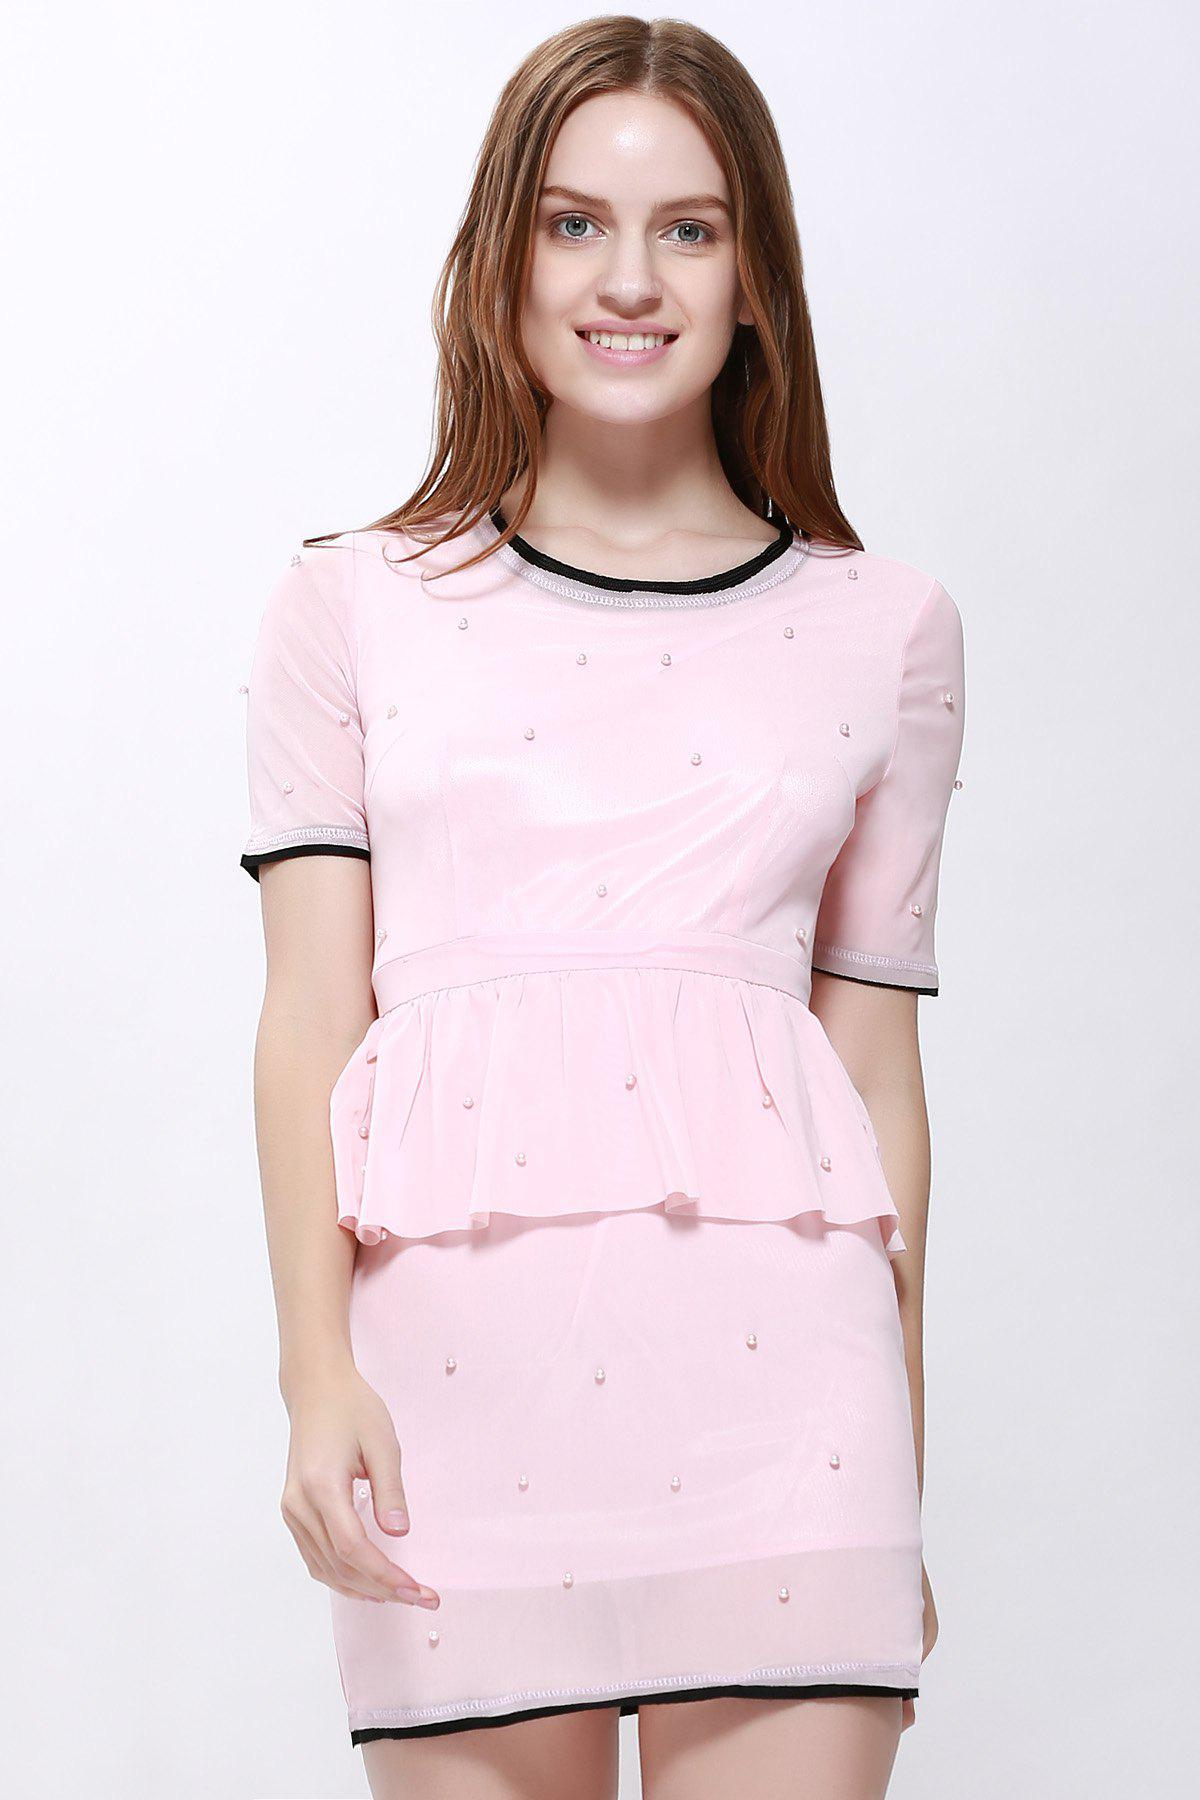 Ladylike Faux Twinset Flounce Edge Short Sleeves Women's Dress - PINK L